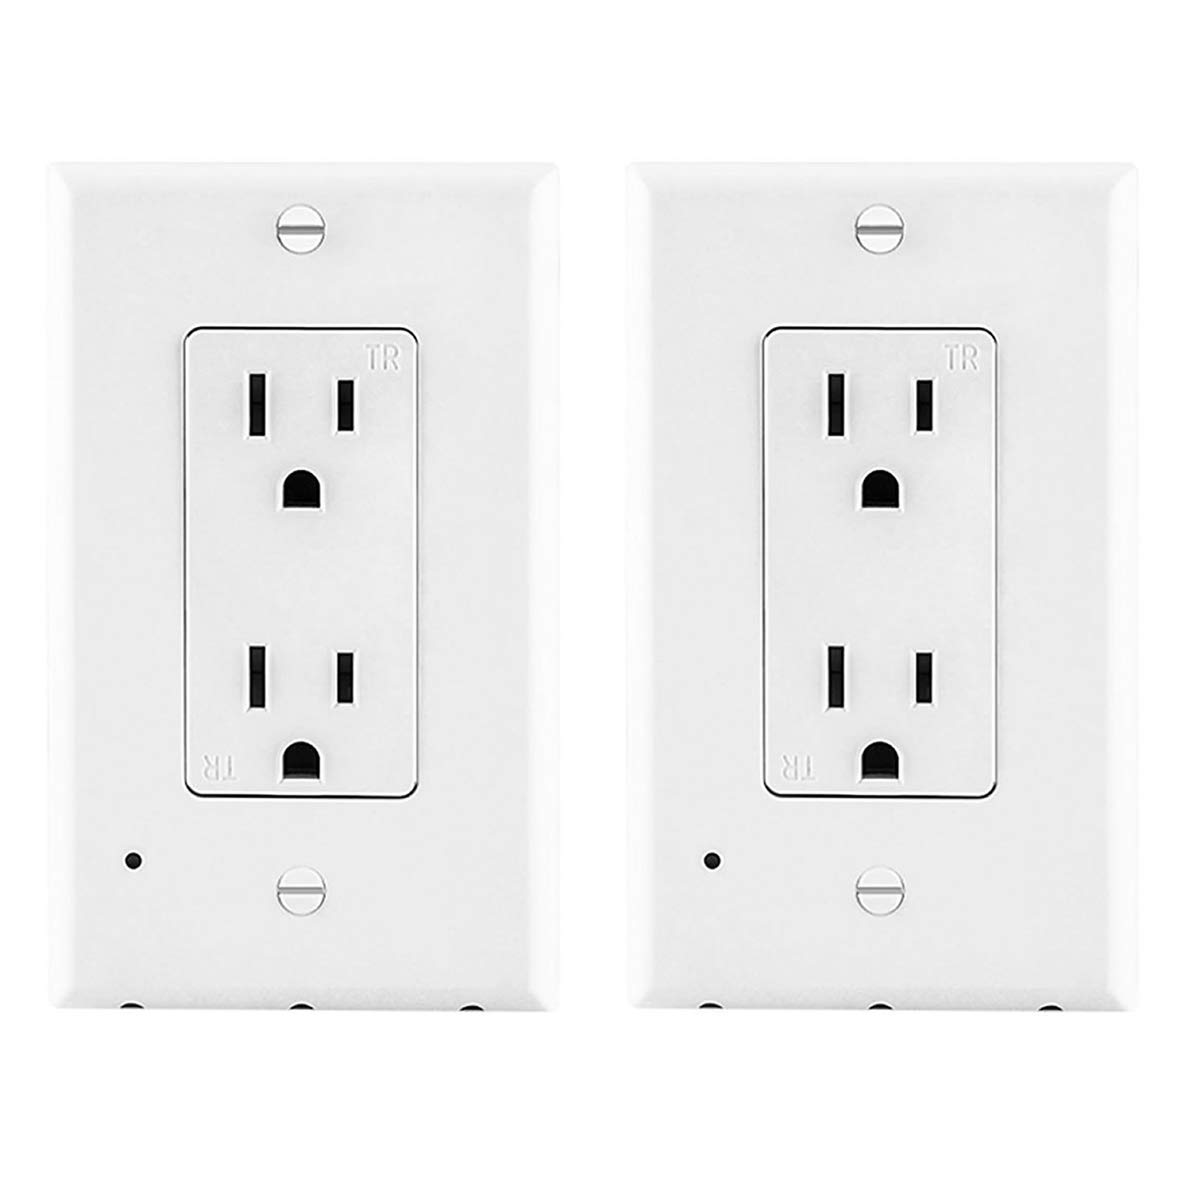 Outlet Wall Plate with LED Night Lights AriesTech Guidelight Outlet Cover Flame Resistant Materials Auto ON/OFF No Batteries No Wires Fits for Decor White 2 Pack